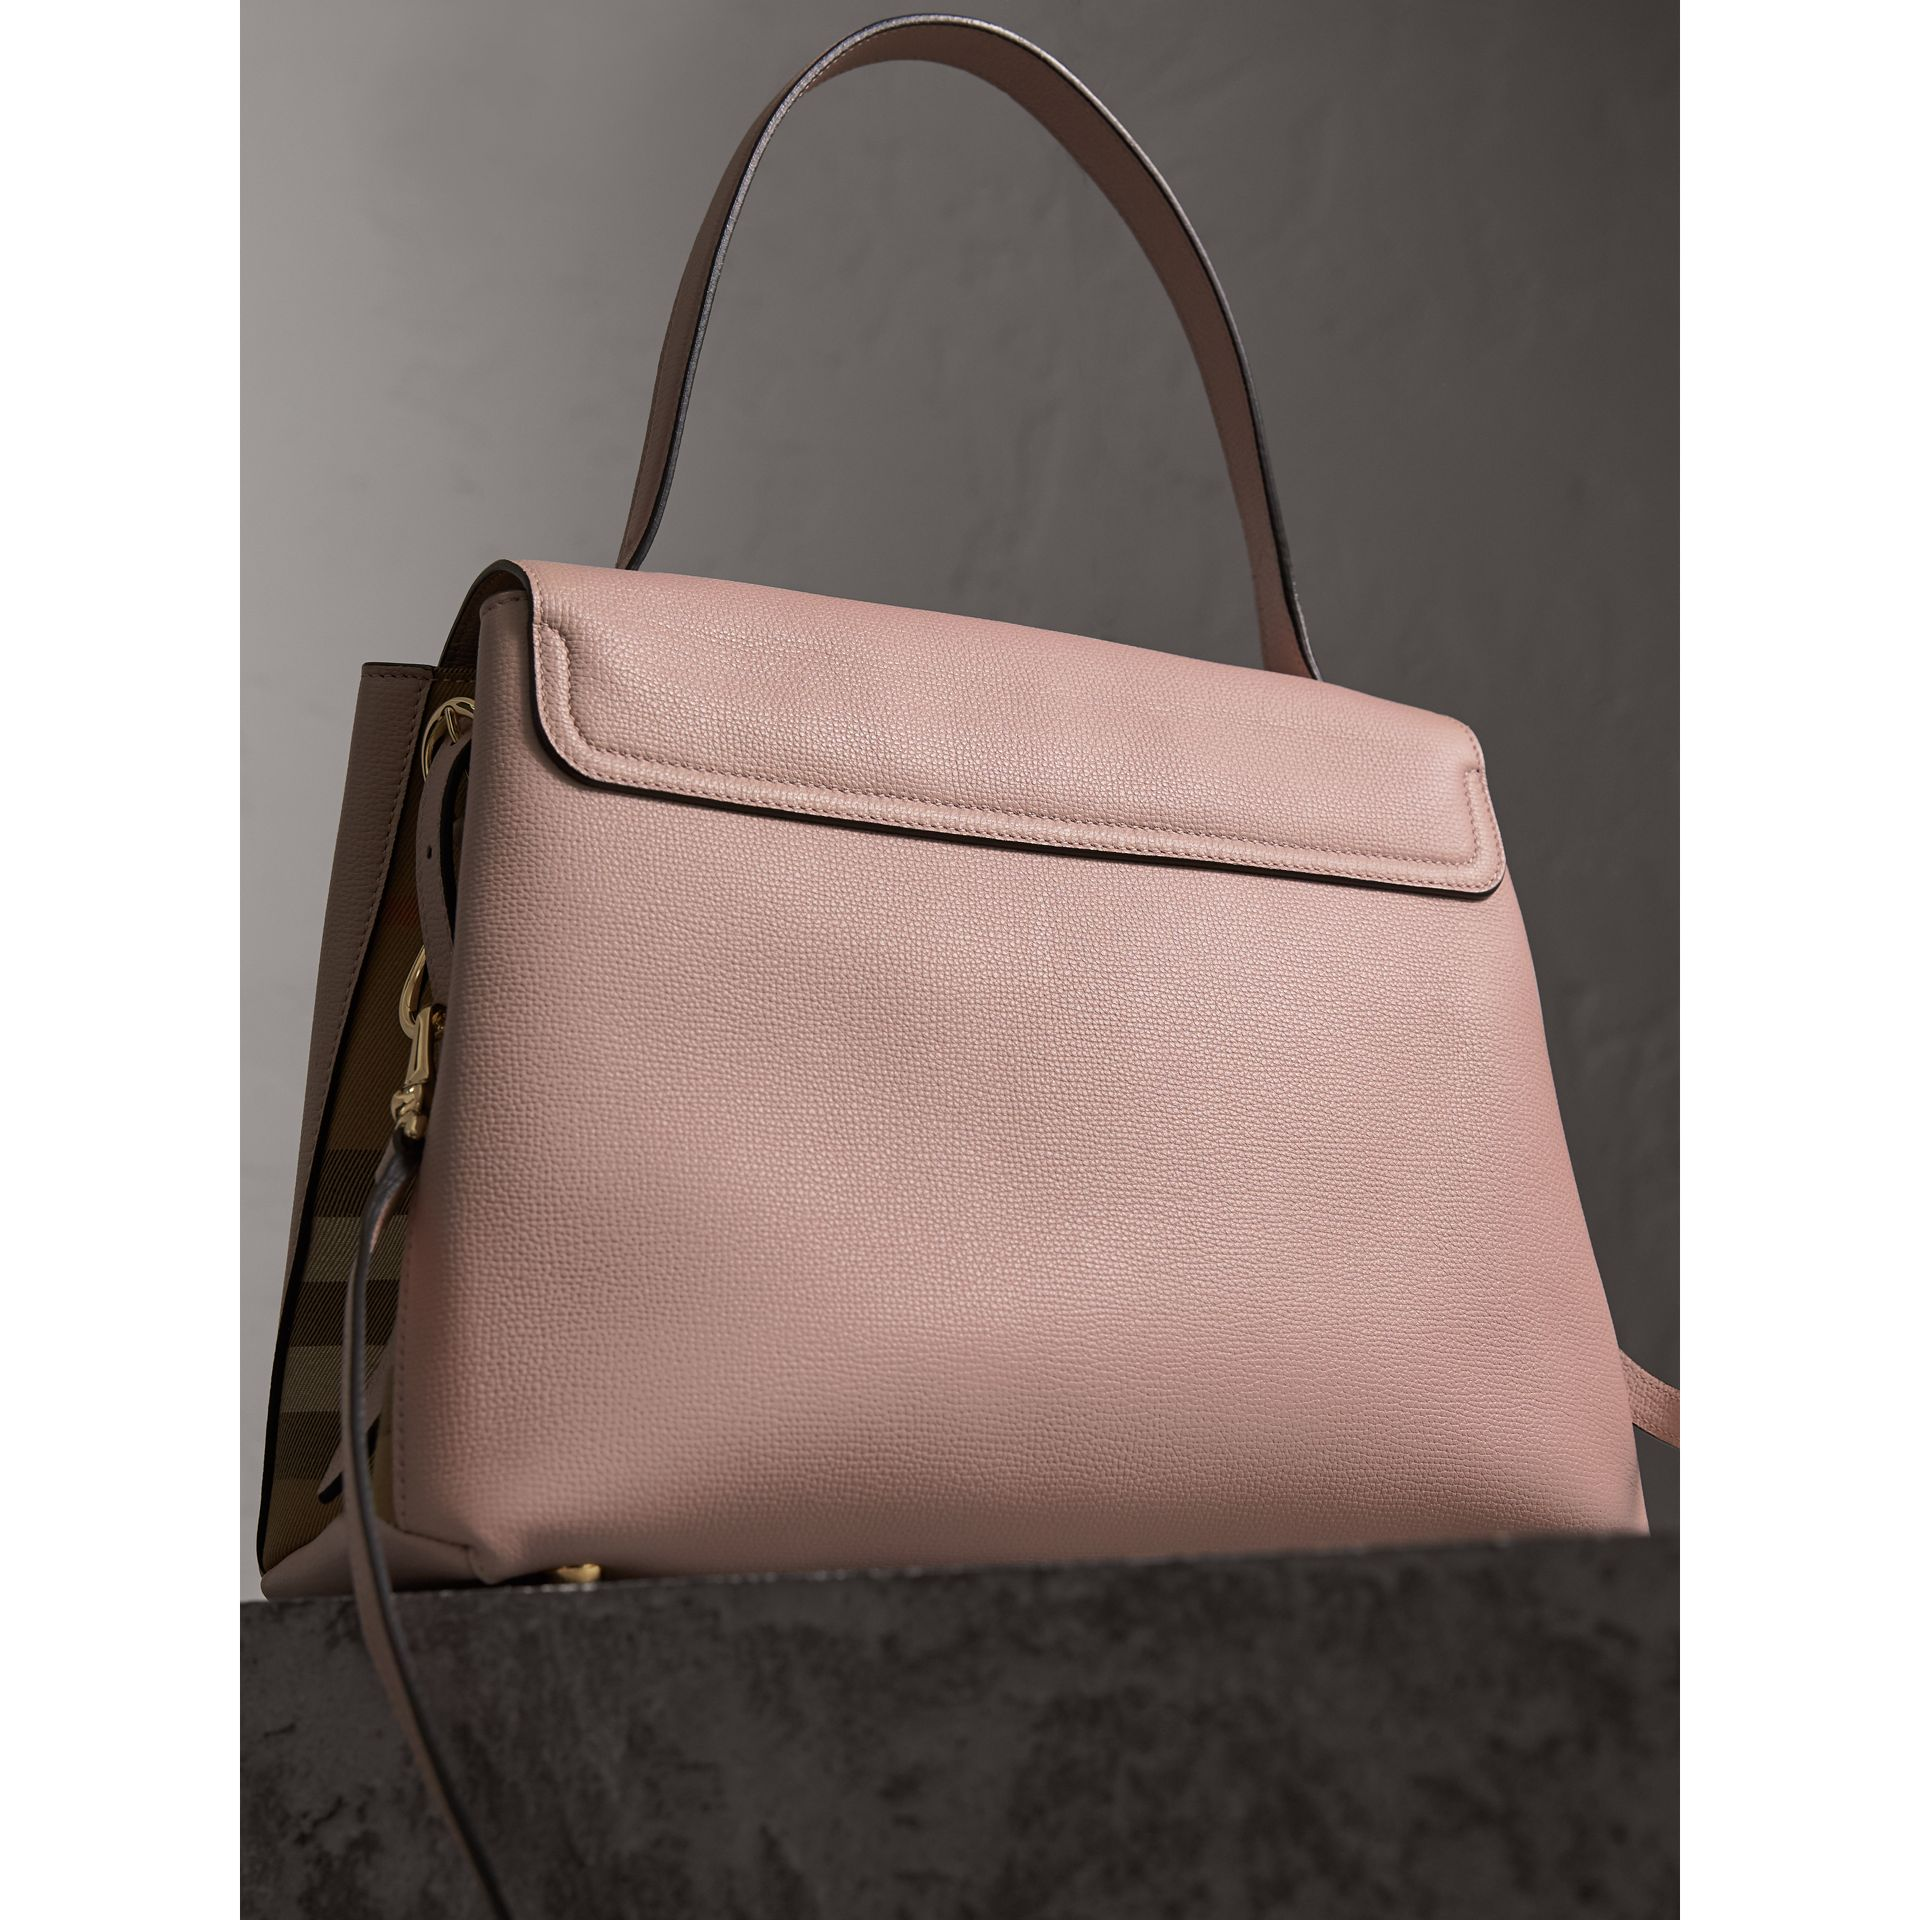 Medium Grainy Leather and House Check Tote Bag in Pale Orchid - Women | Burberry United States - gallery image 4